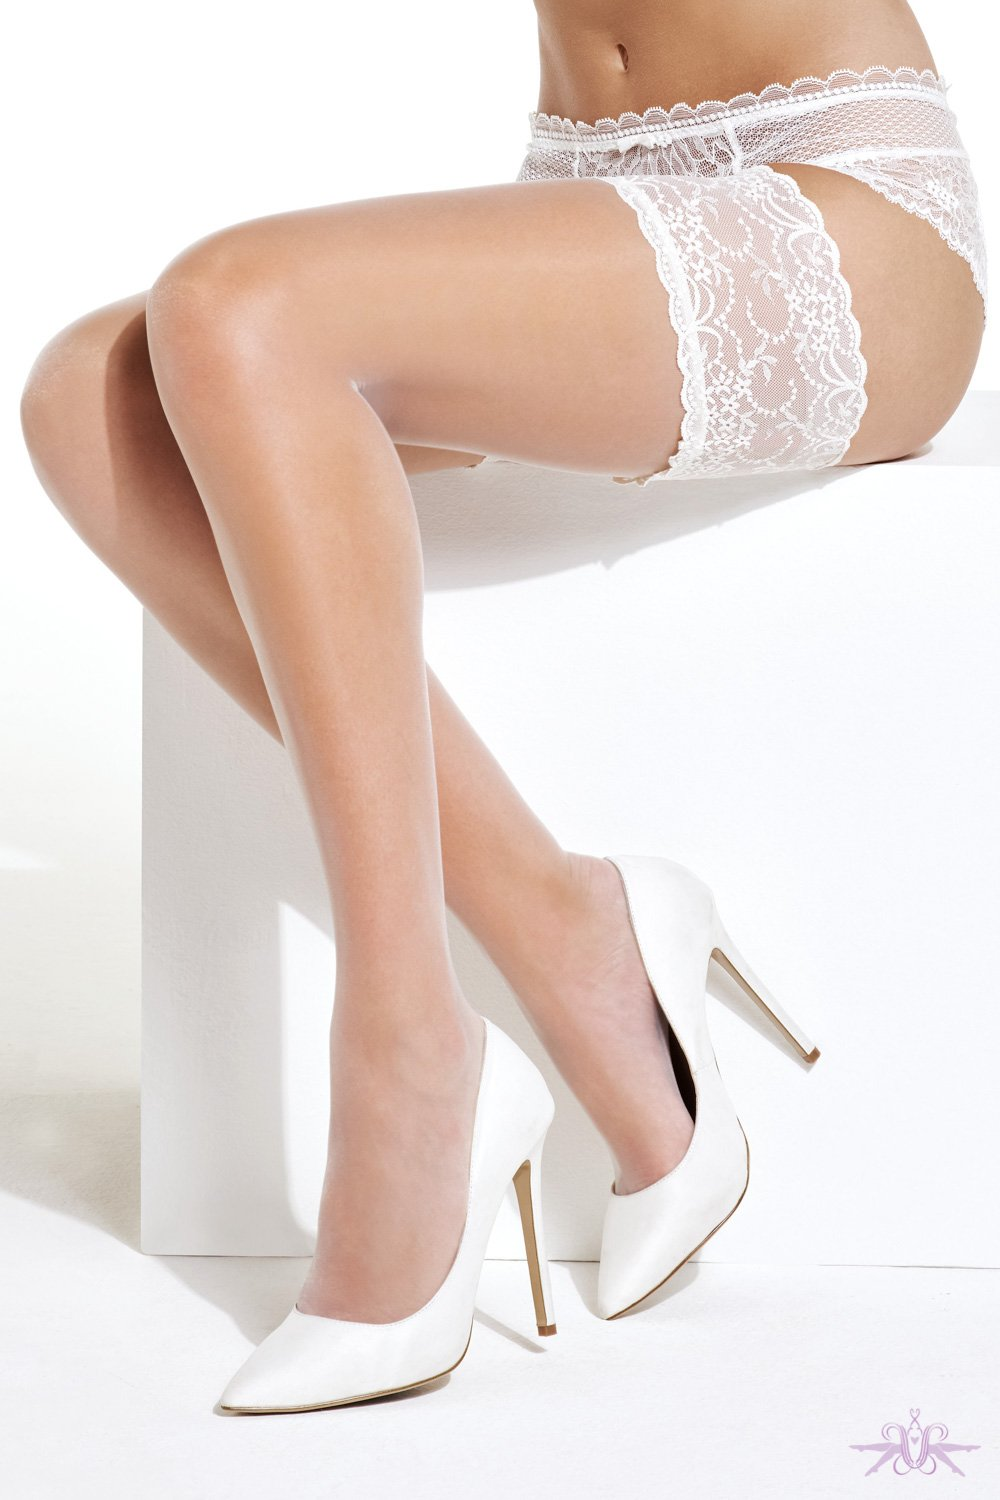 Charnos Bridal Lace Hold Ups